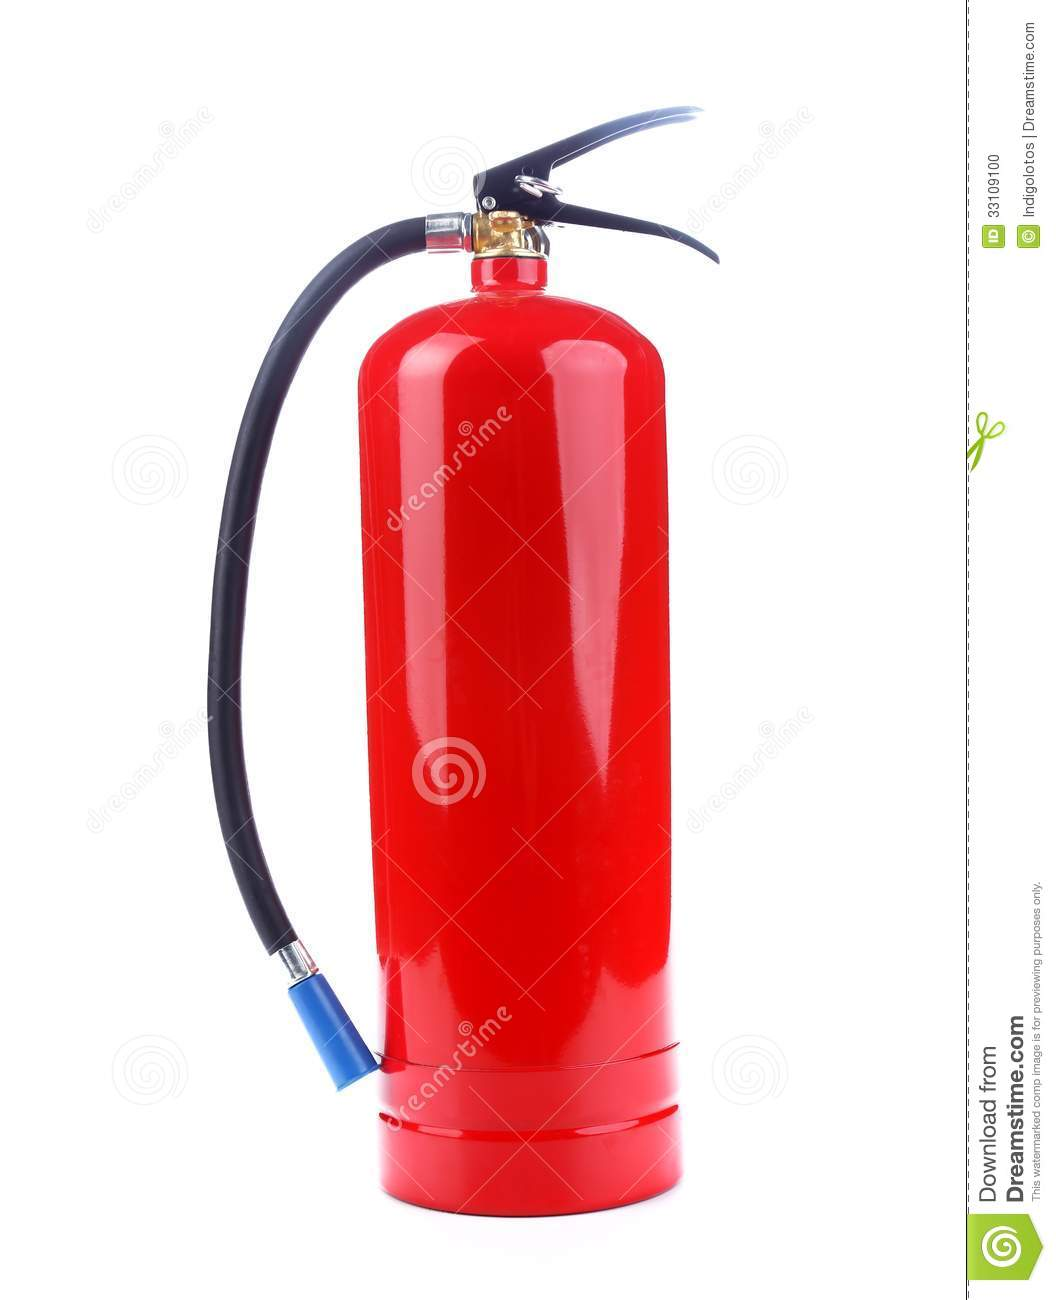 What chemical is in a fire extinguisher